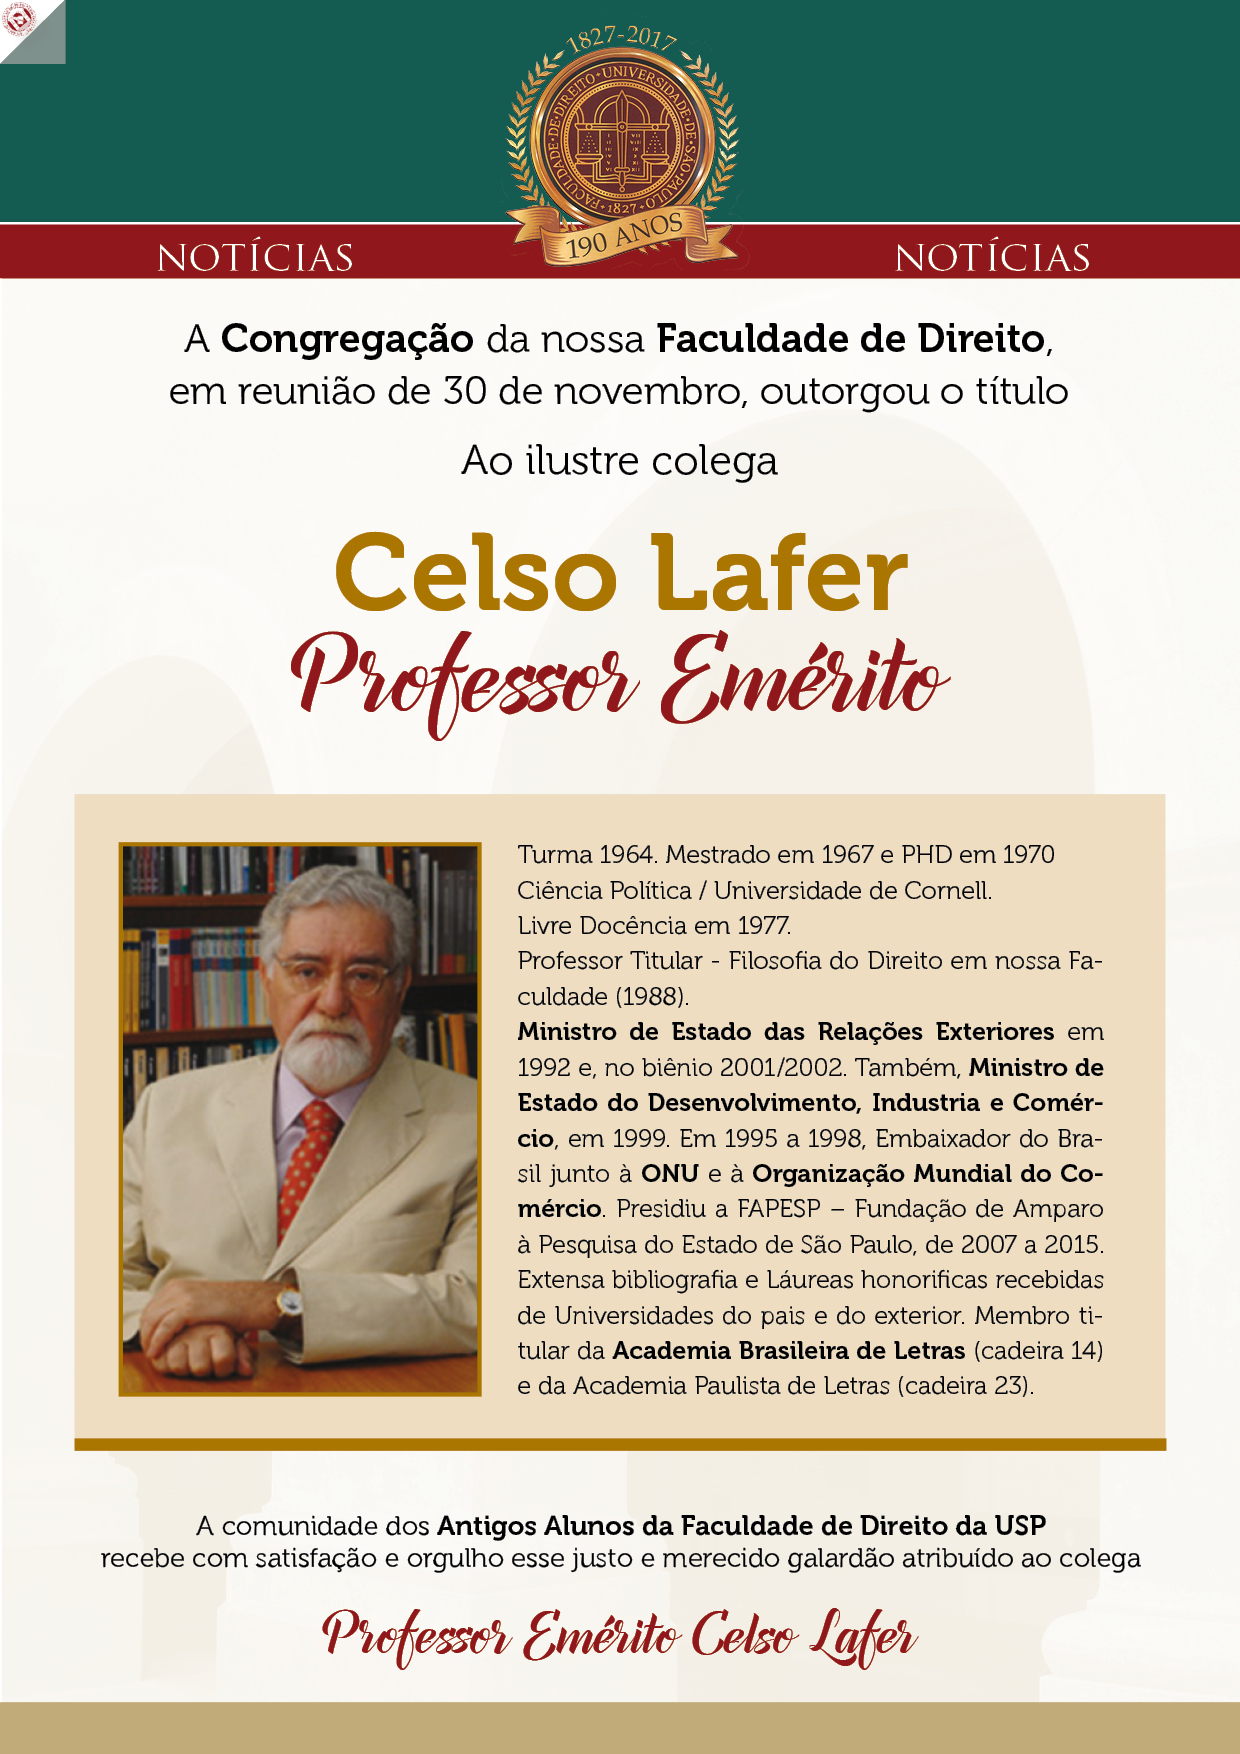 PROFESSOR CELSO LAFER - PROFESSOR EMÉRITO